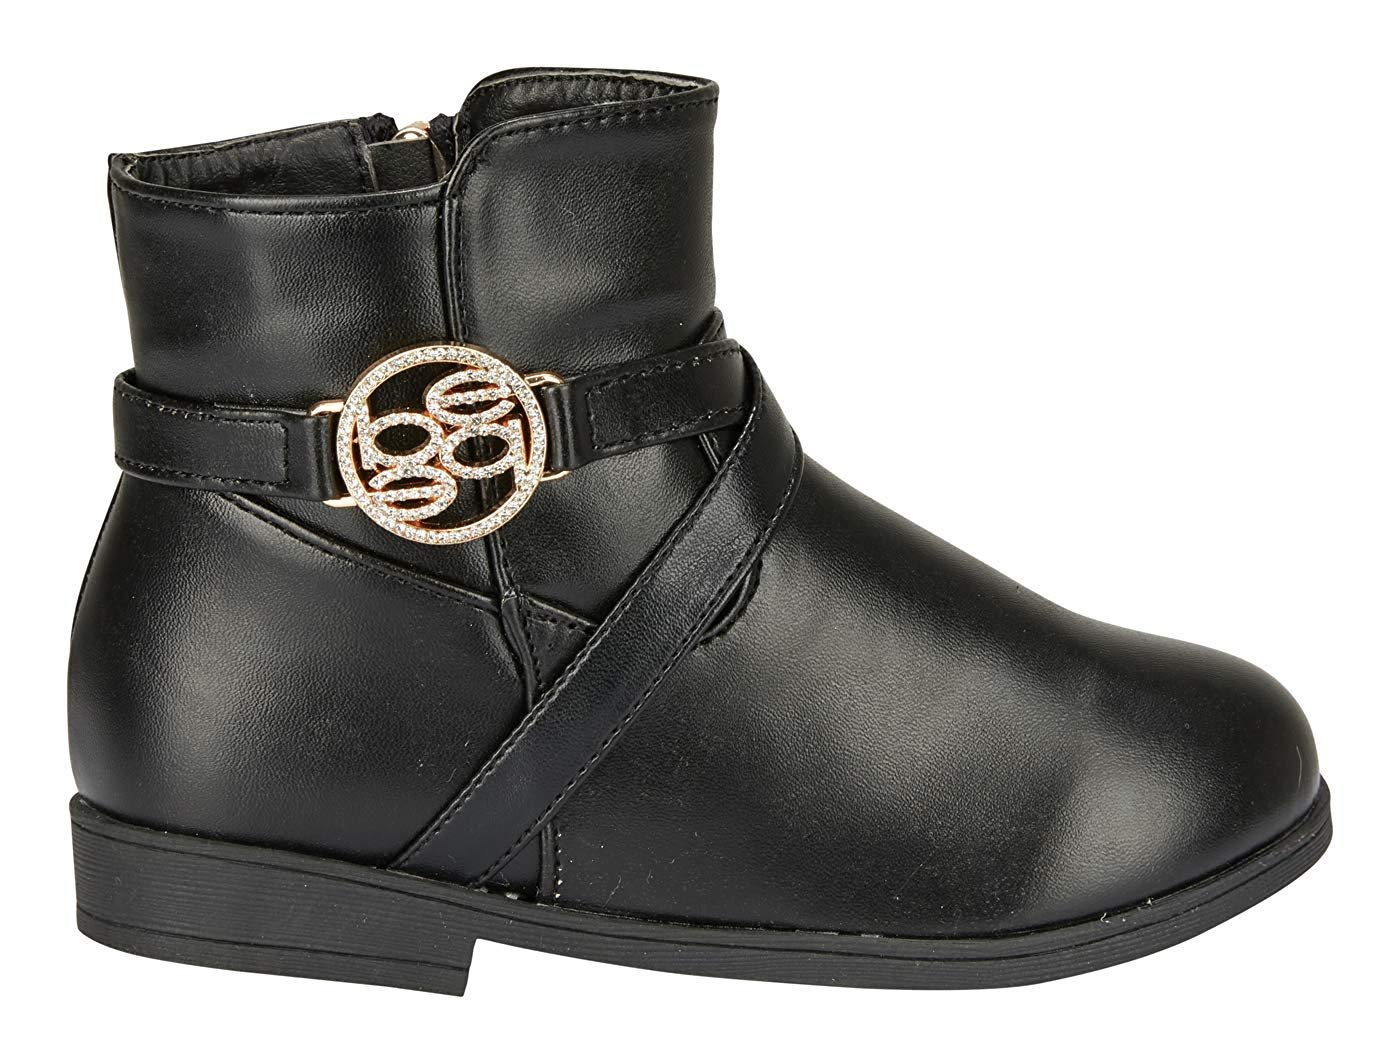 bebe Toddler Girls Riding Boots Size